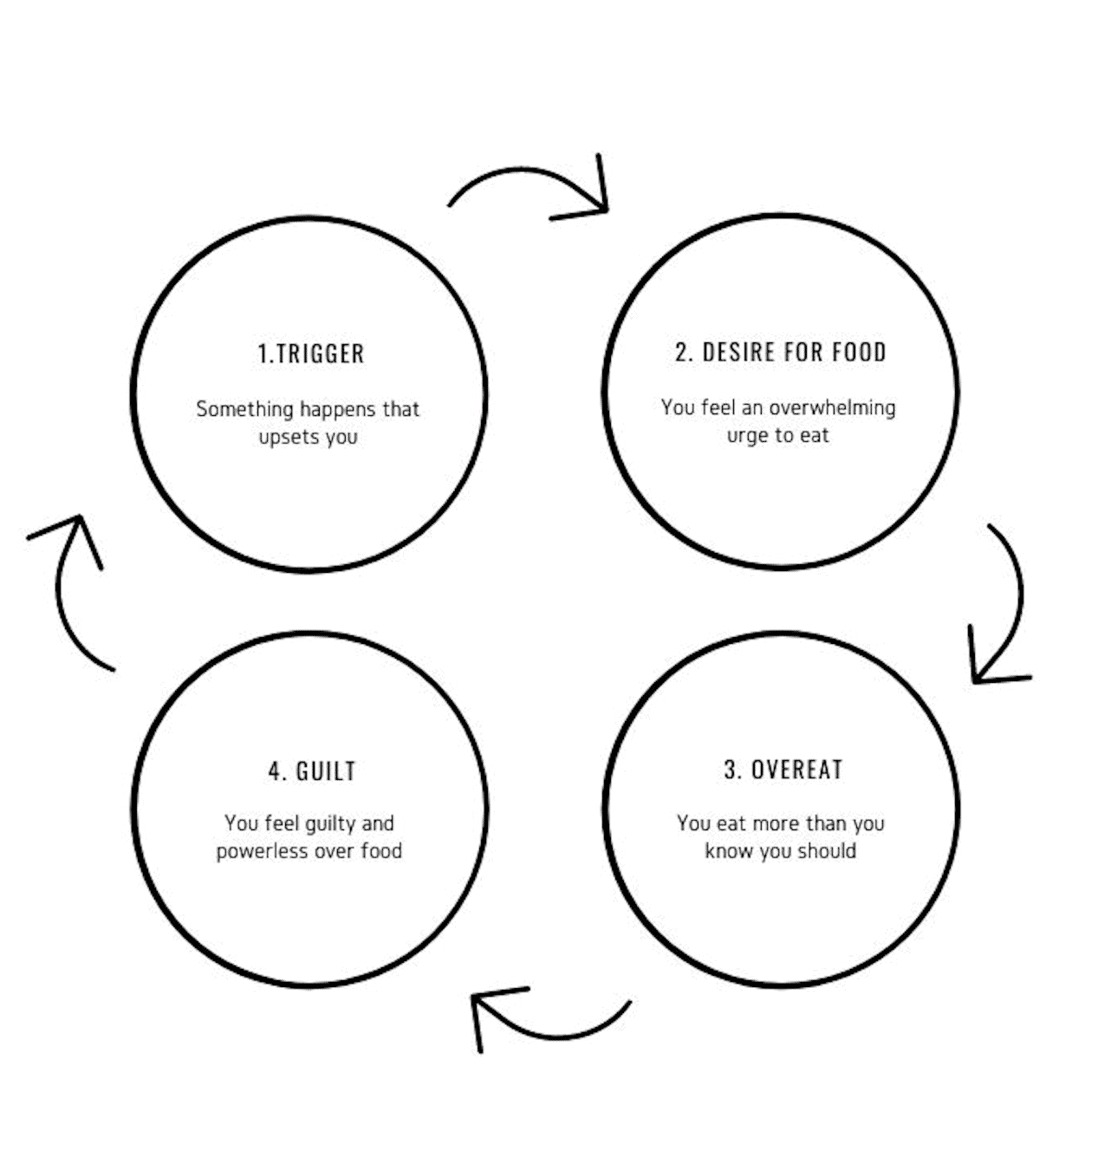 emotional eating cycle showing 4 steps that trigger us to overeat and feel guilt afterwards